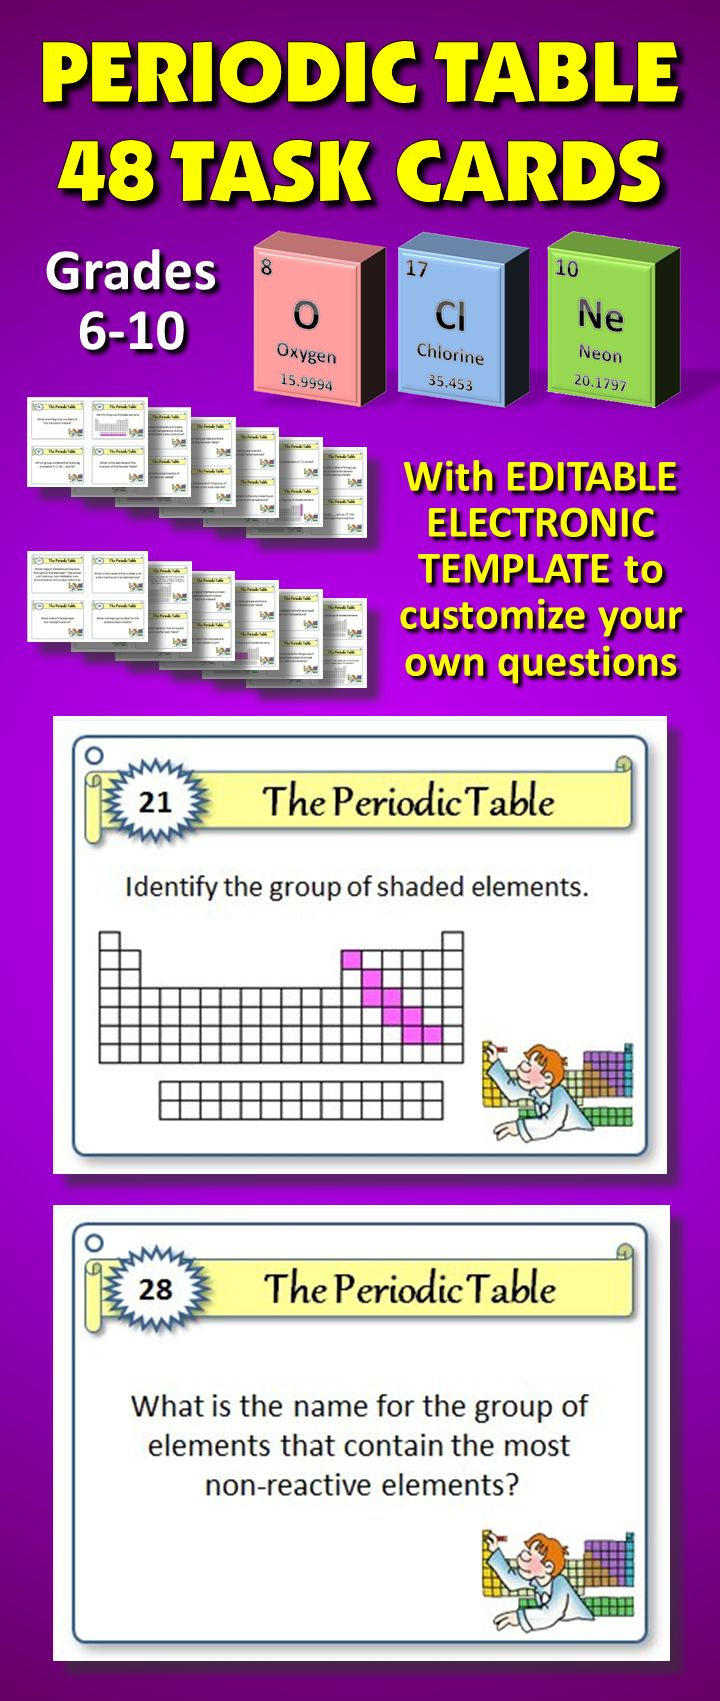 48 best teaching chemistry periodic table and trends images on 48 periodic table task cards with editable electronic template to customize your own questions helps urtaz Gallery